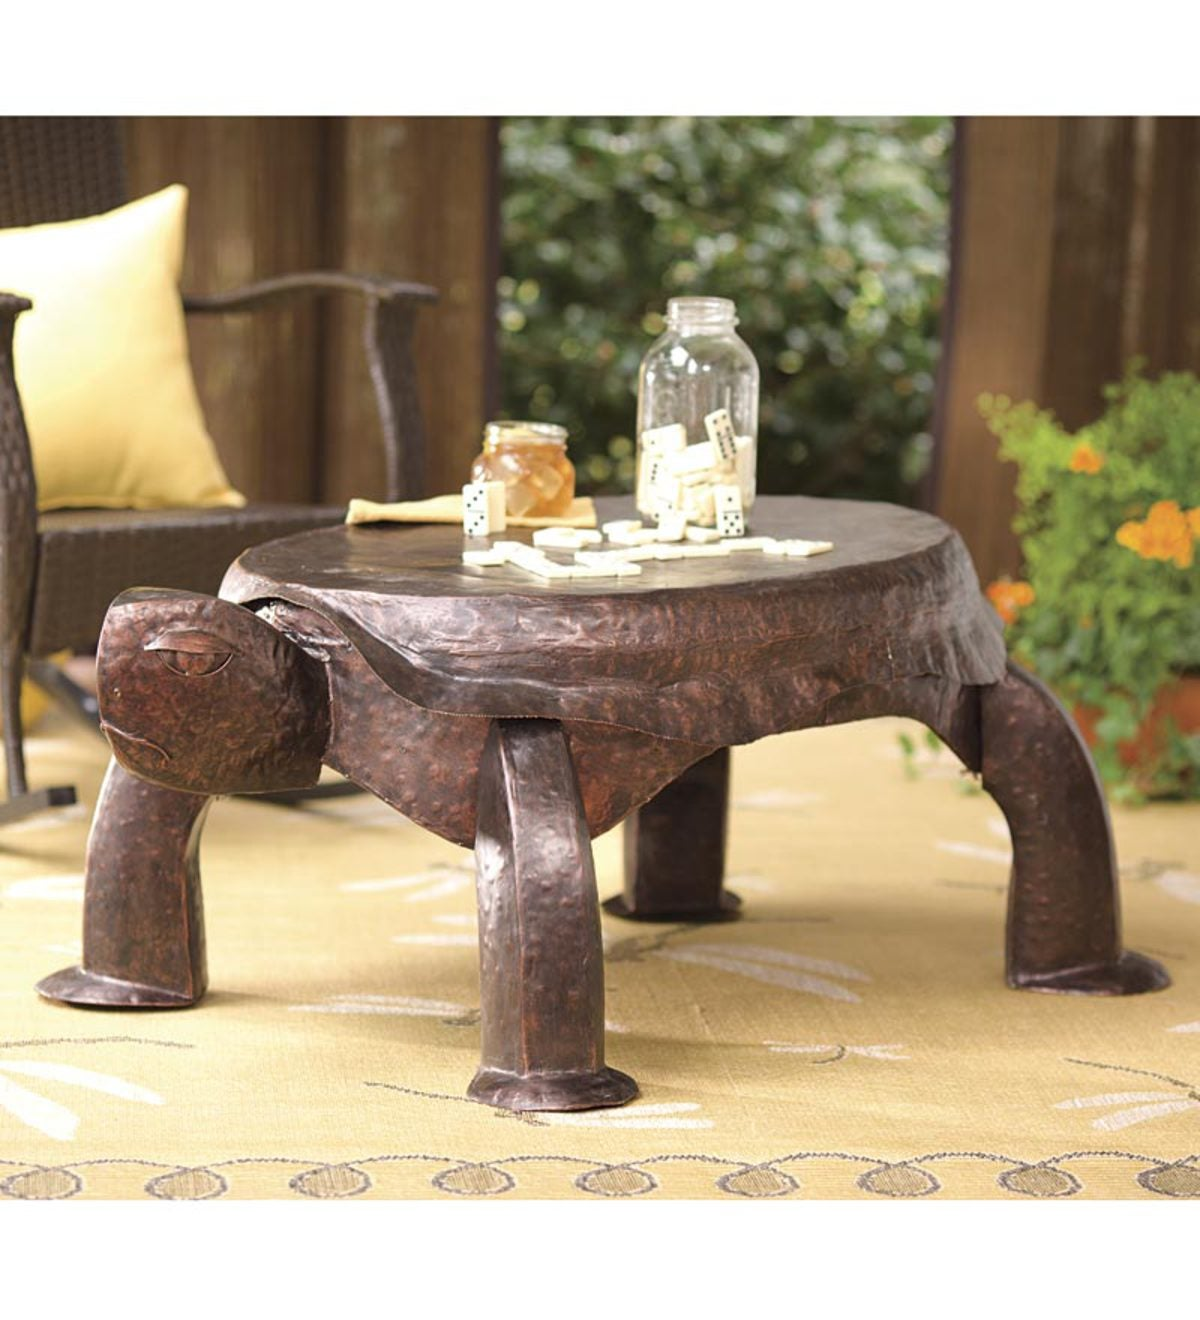 Beau Handcrafted Metal Turtle Coffee Table For Outdoor Or Indoor Use